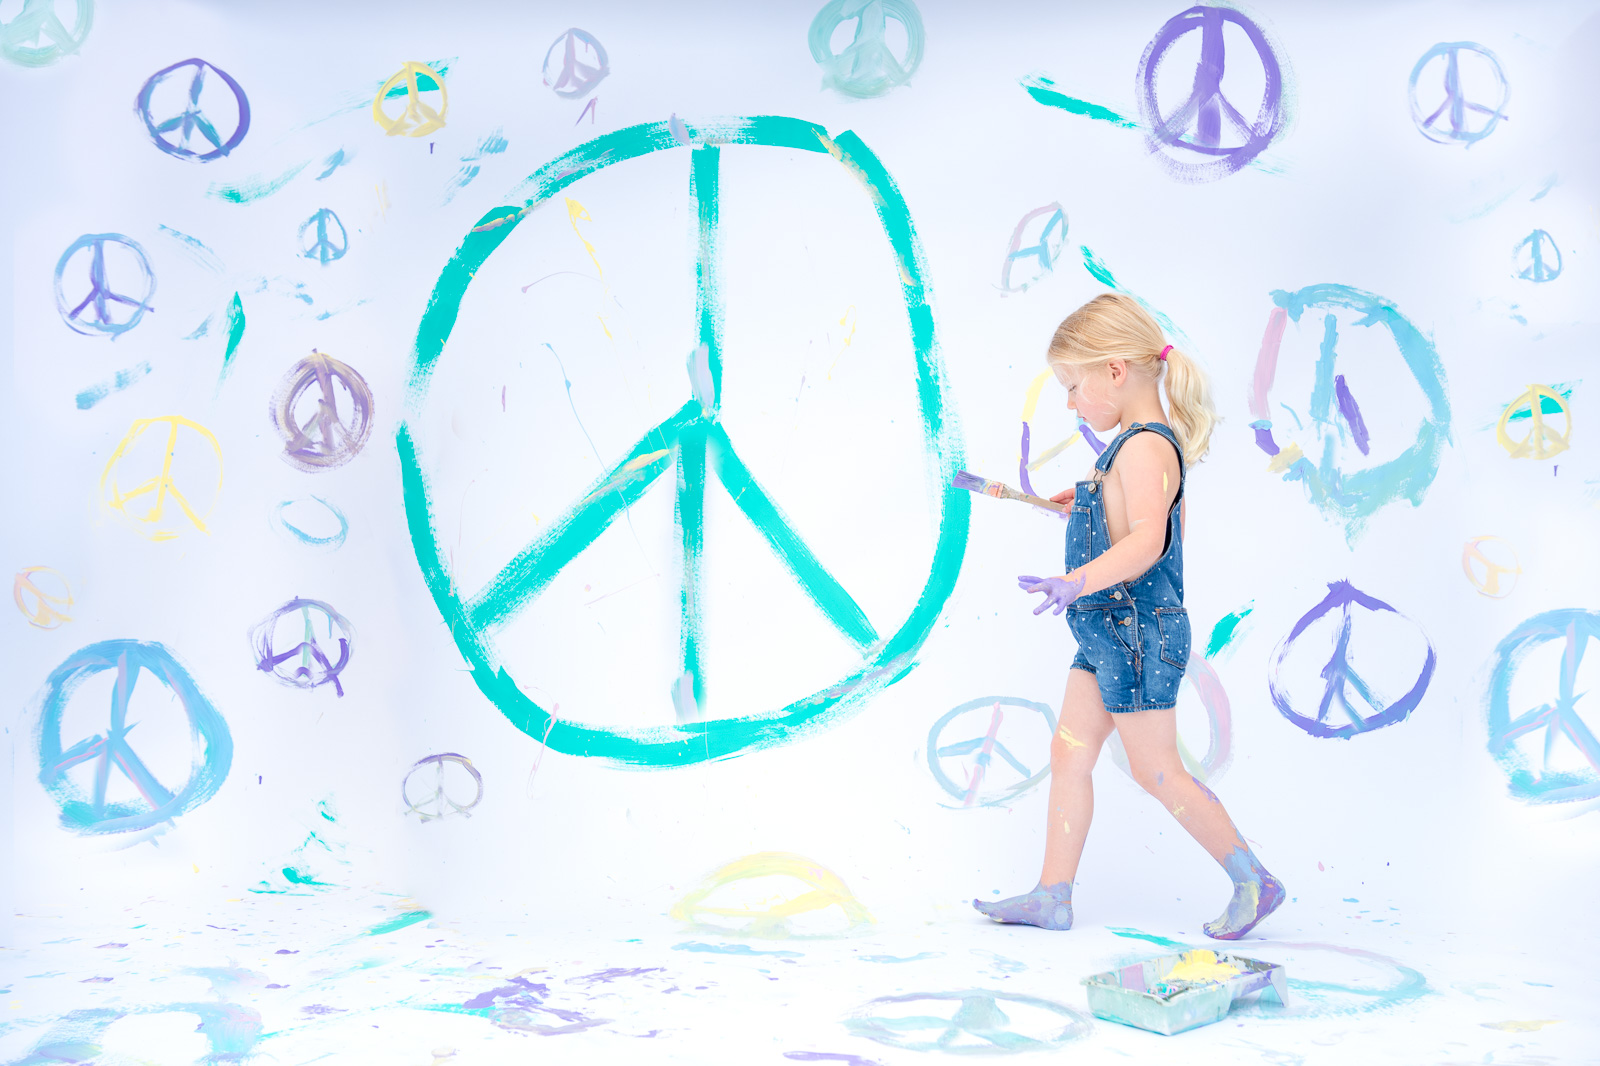 Unexpected Backdrop girl in overalls painting peace signs karlee hooper